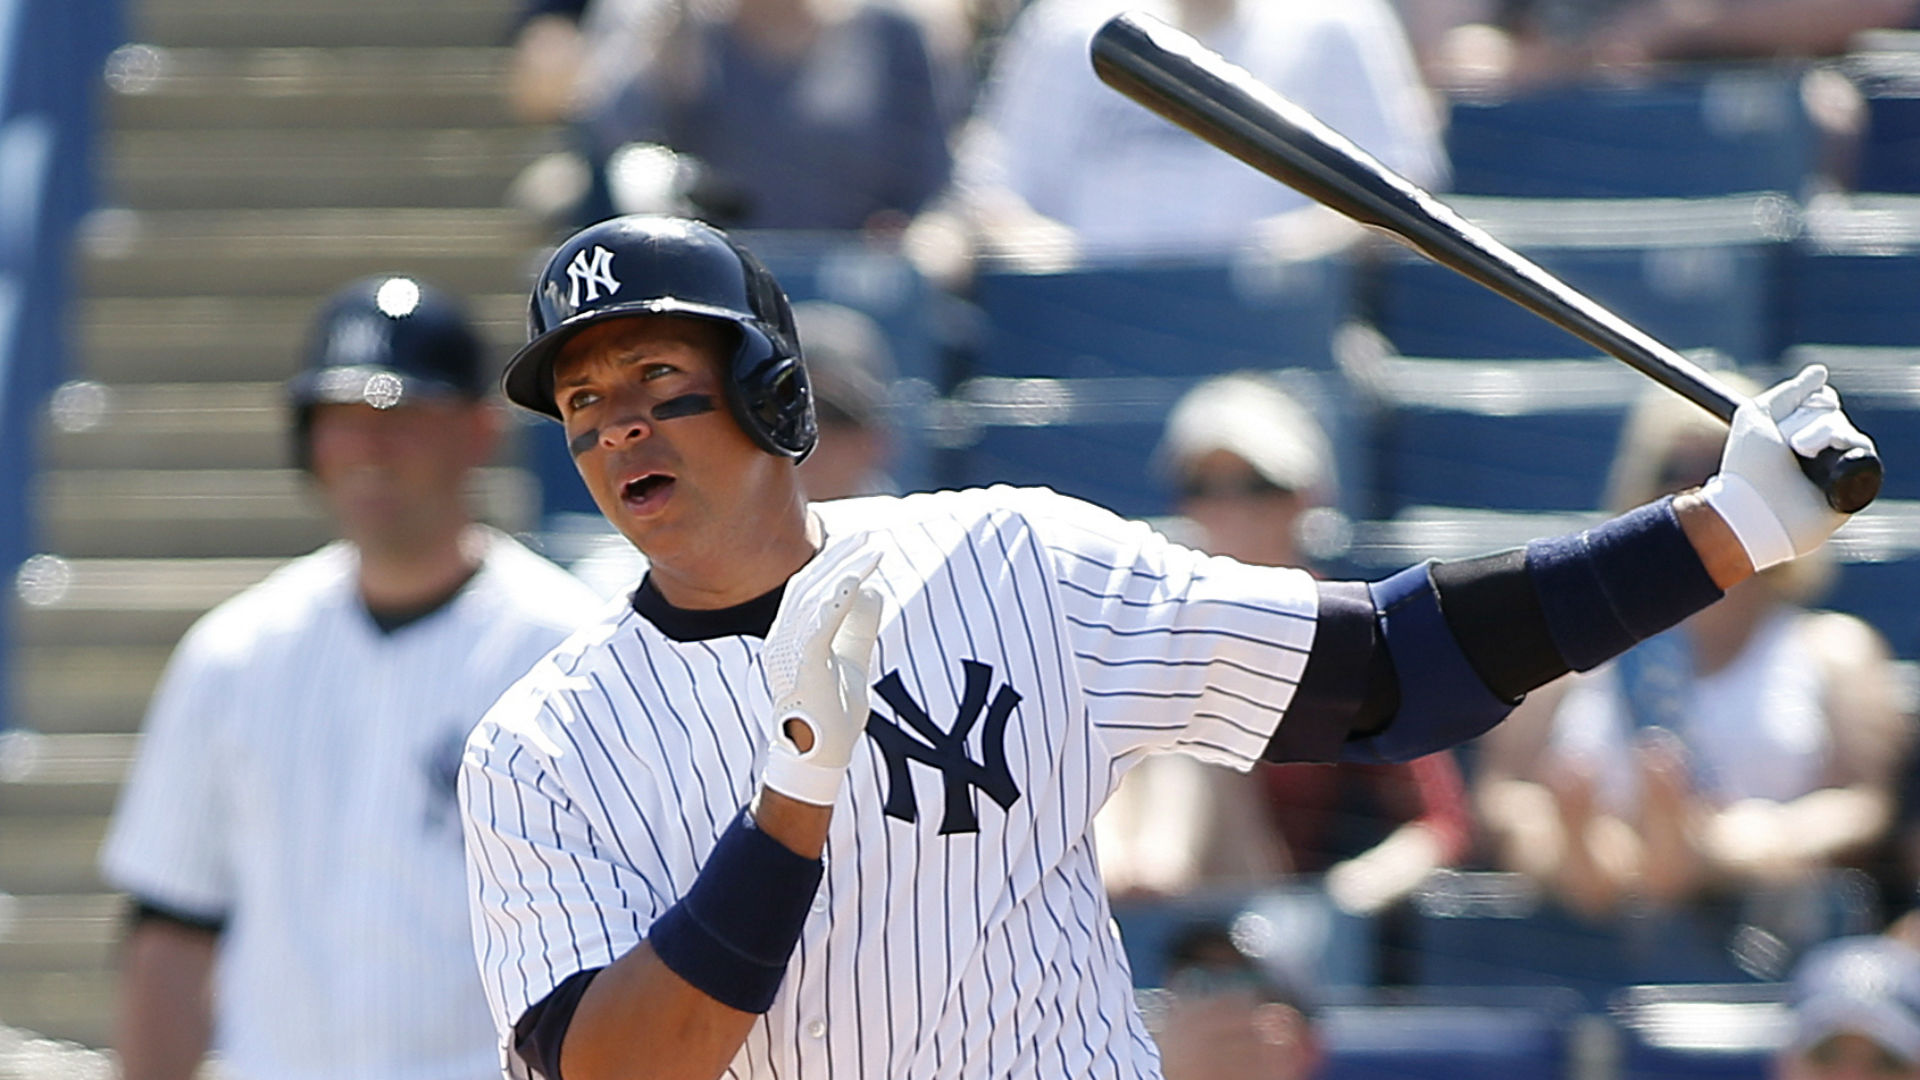 Alex Rodriguez in spring training debut